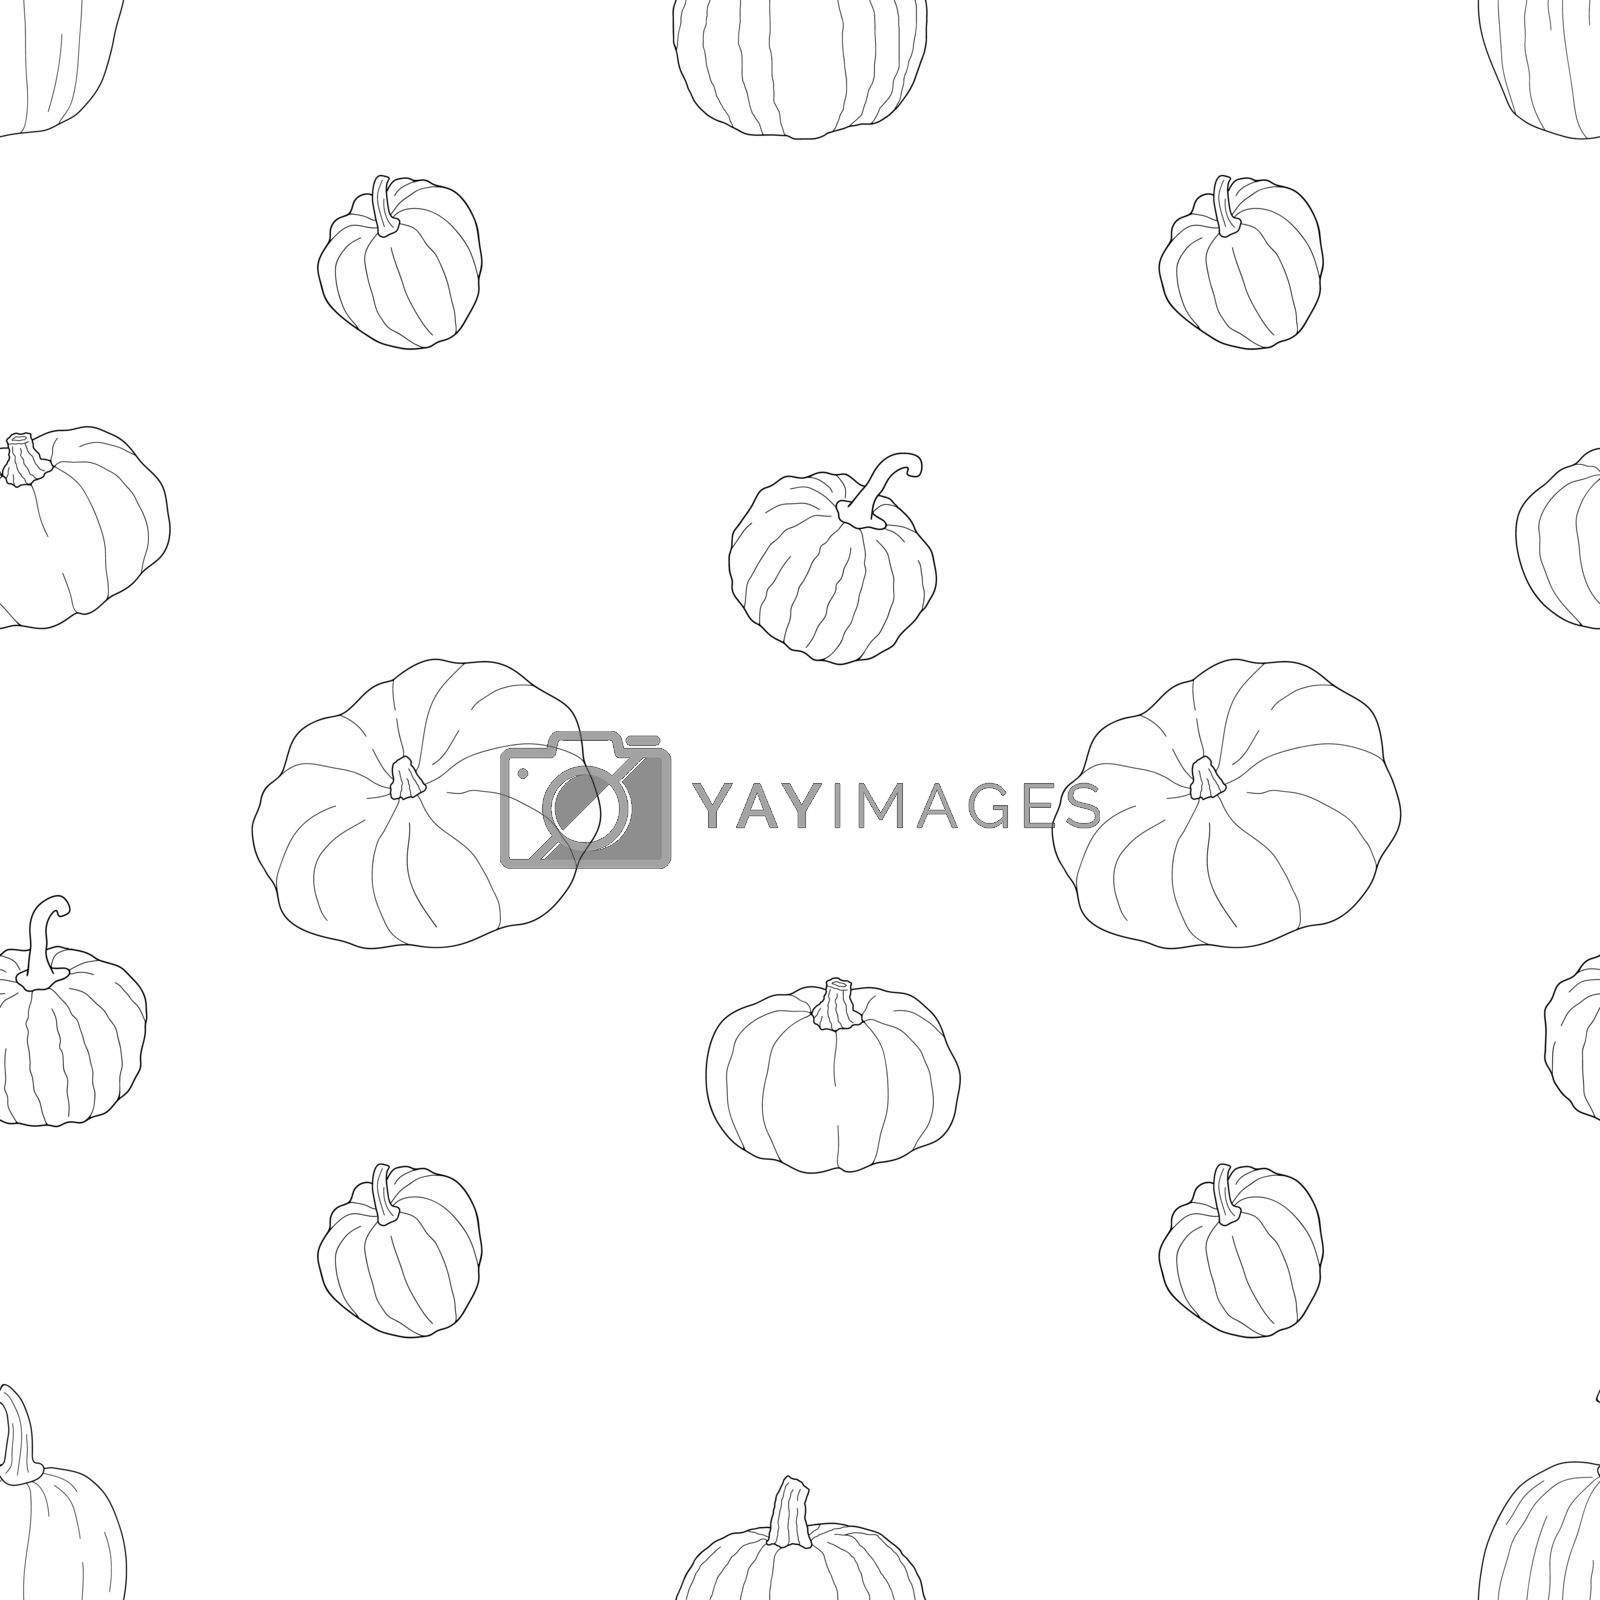 Pumpkin transparent seamless pattern. Vector illustration isolated on white background. Healthy vegetarian food. Doodle style. Decoration for greeting cards, posters, patches, prints for clothes, emblems.